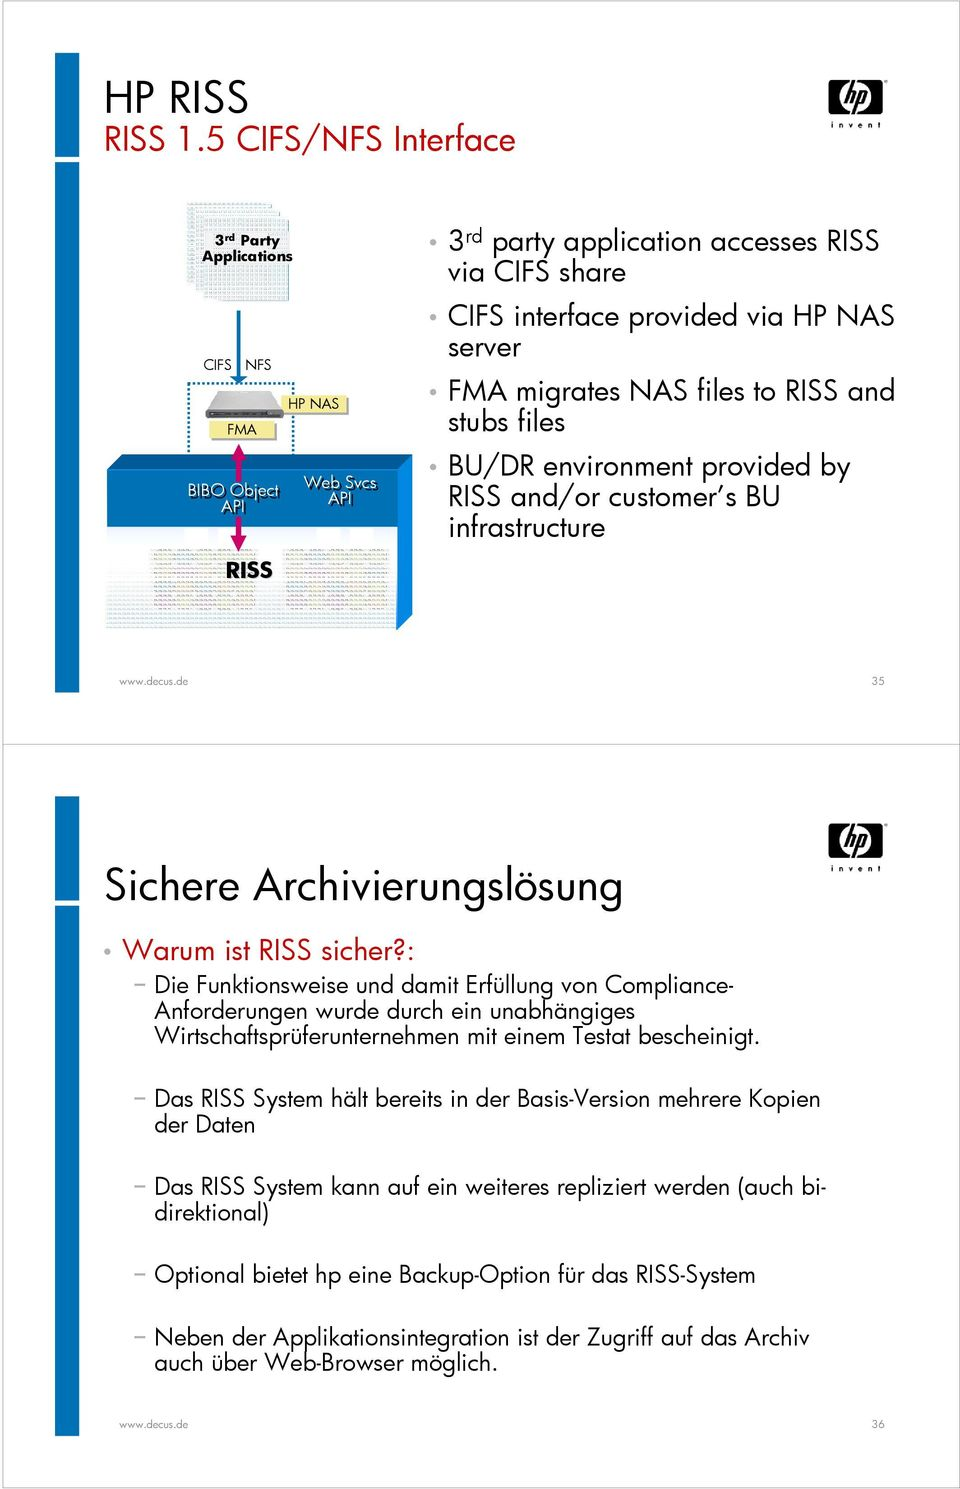 migrates NAS files to RISS and stubs files BU/DR environment provided by RISS and/or customer s BU infrastructure www.decus.de 35 Sichere Archivierungslösung Warum ist RISS sicher?